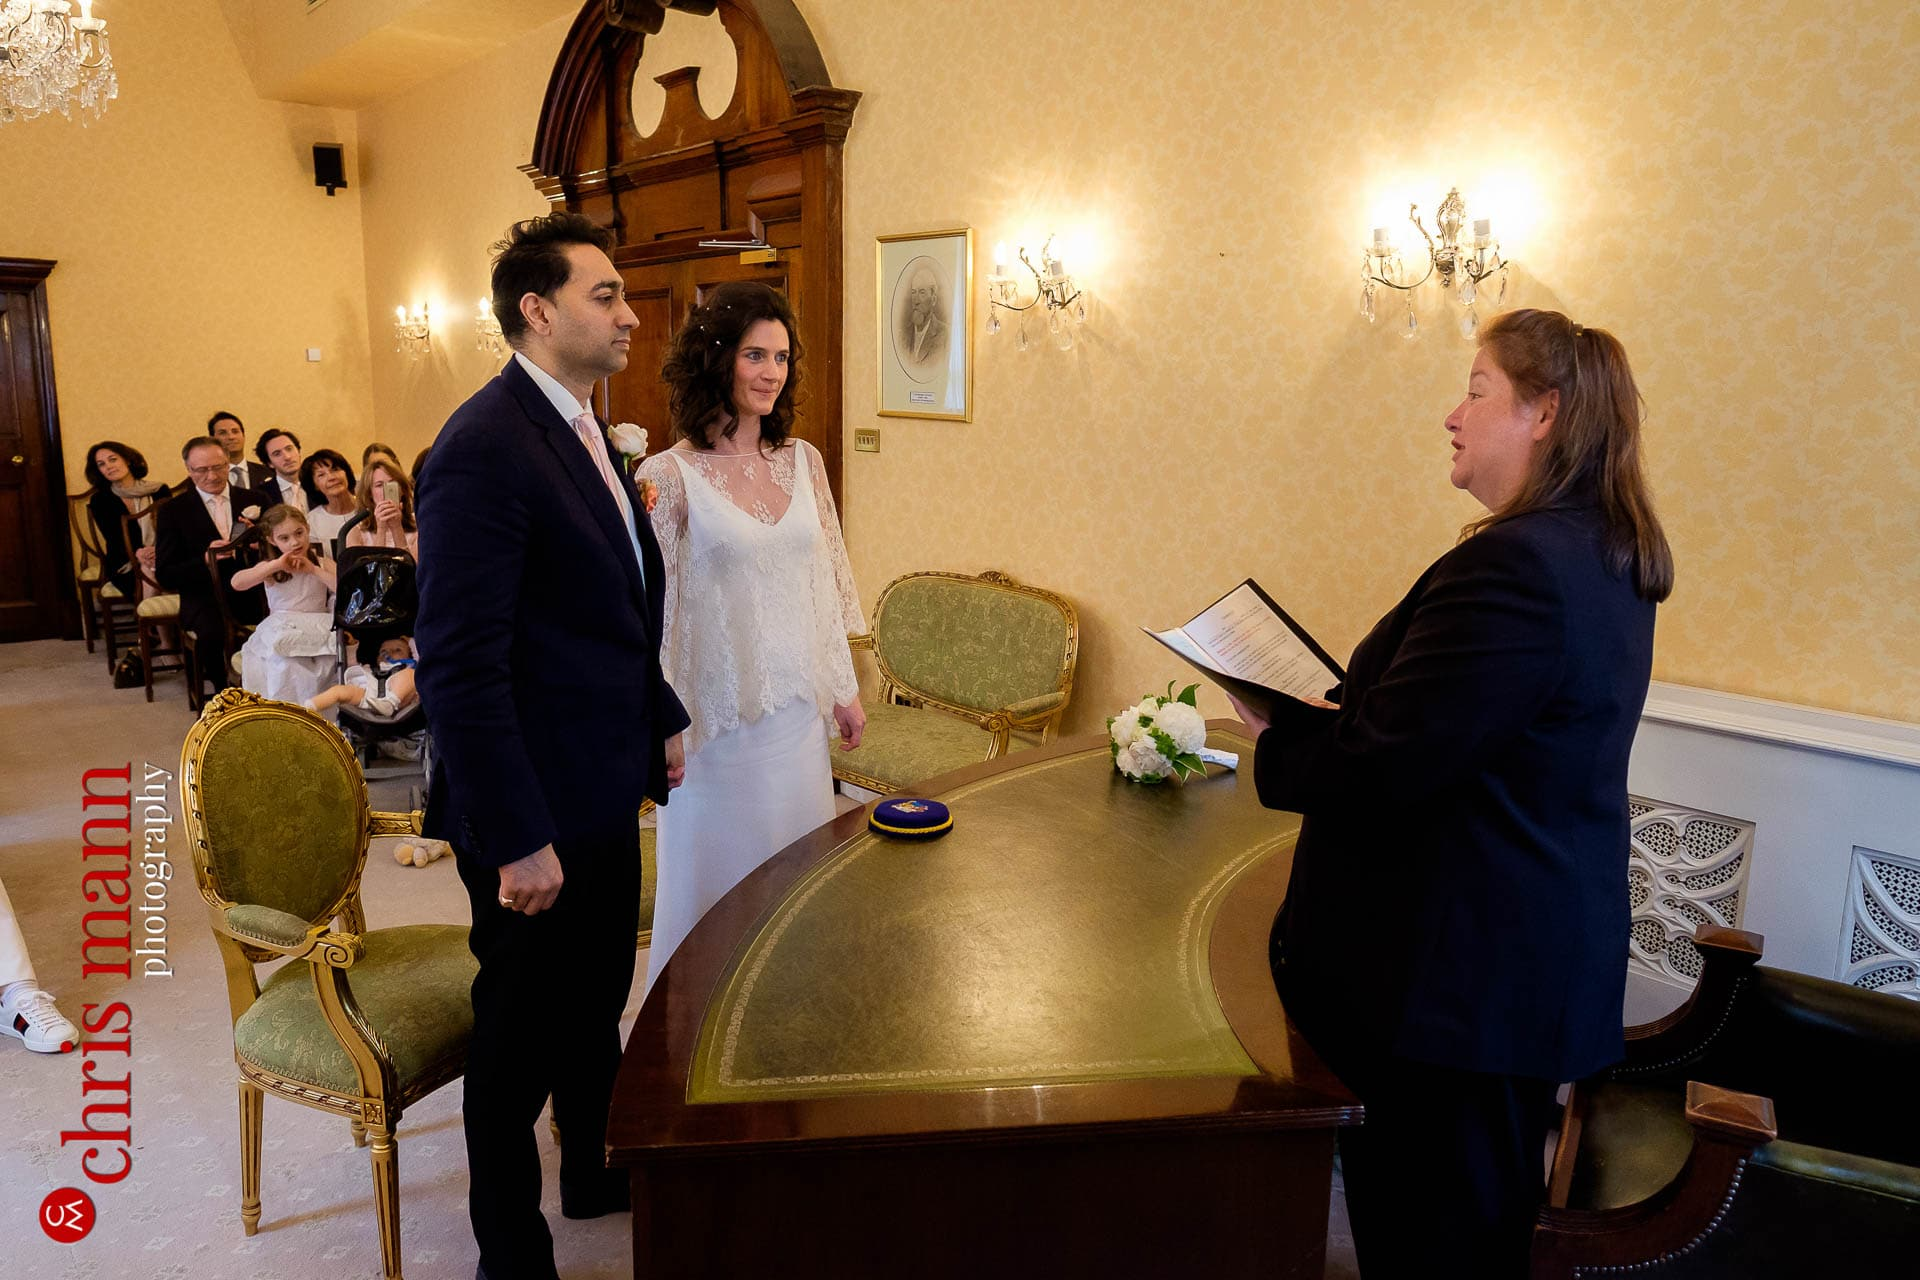 Chelsea Registry Office wedding - couple with officiant